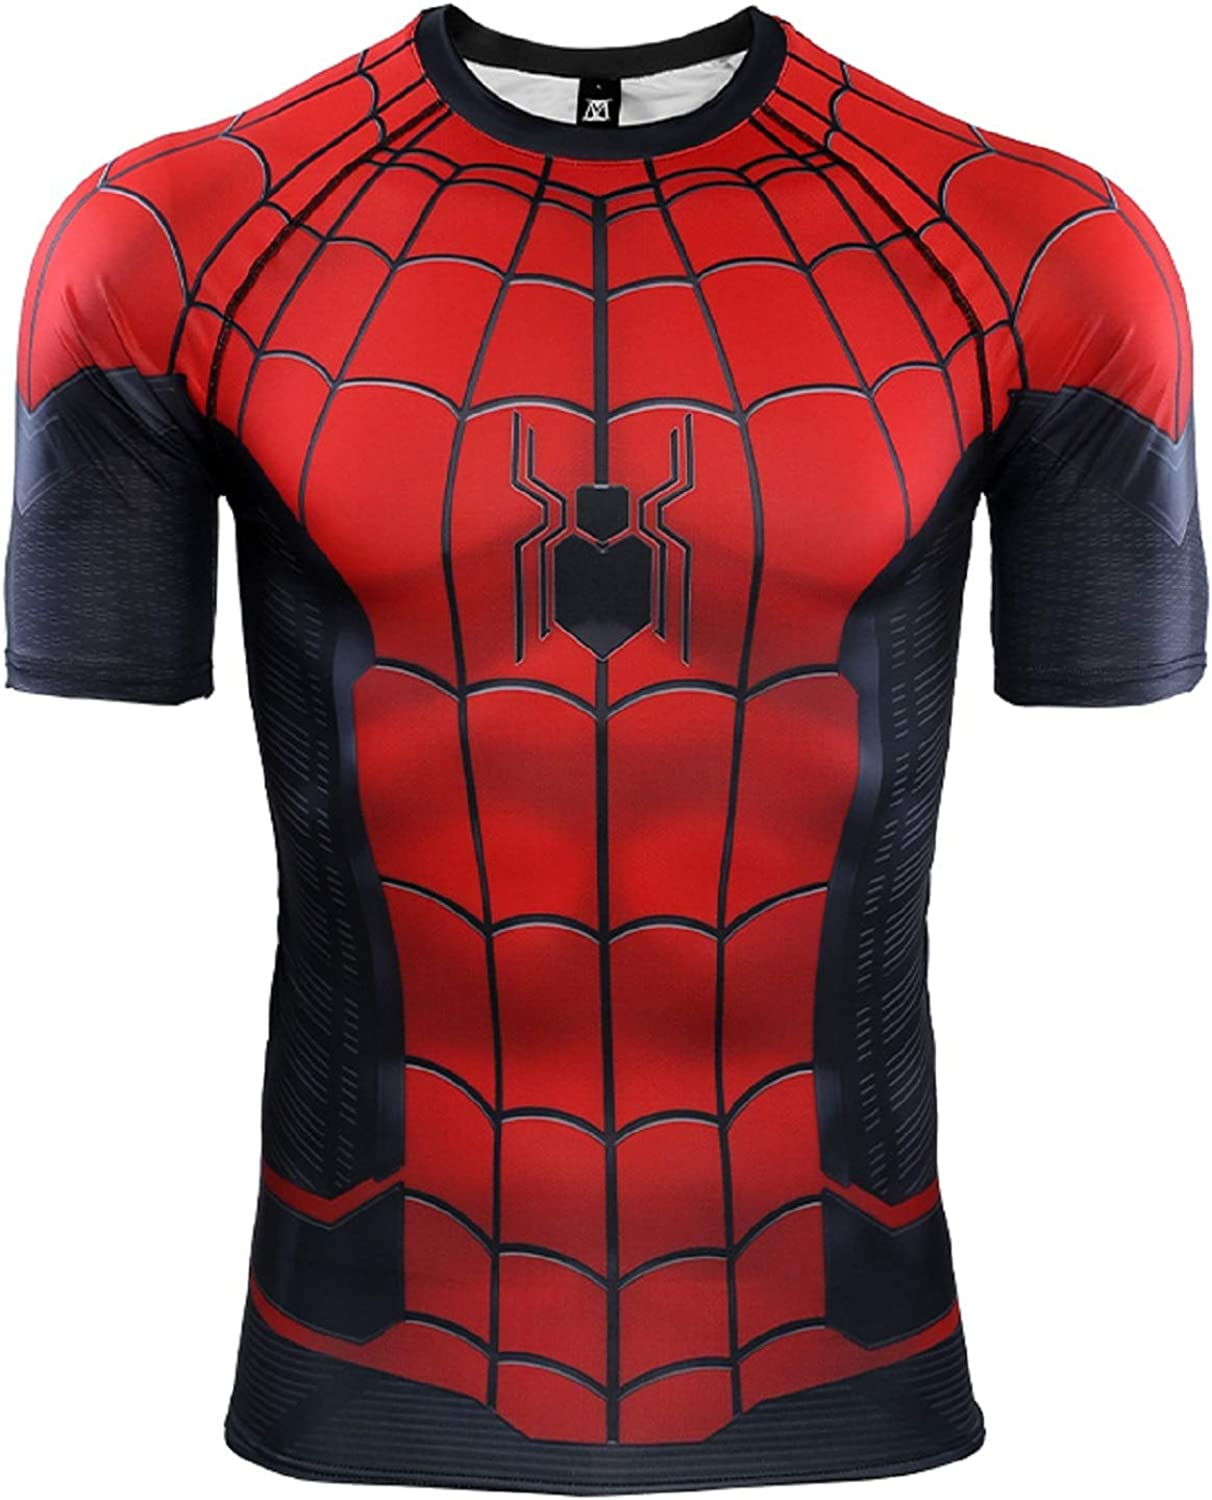 Spider-Man Far from Home Short Sleeve Men's Compression Shirt 3D Print T-Shirt